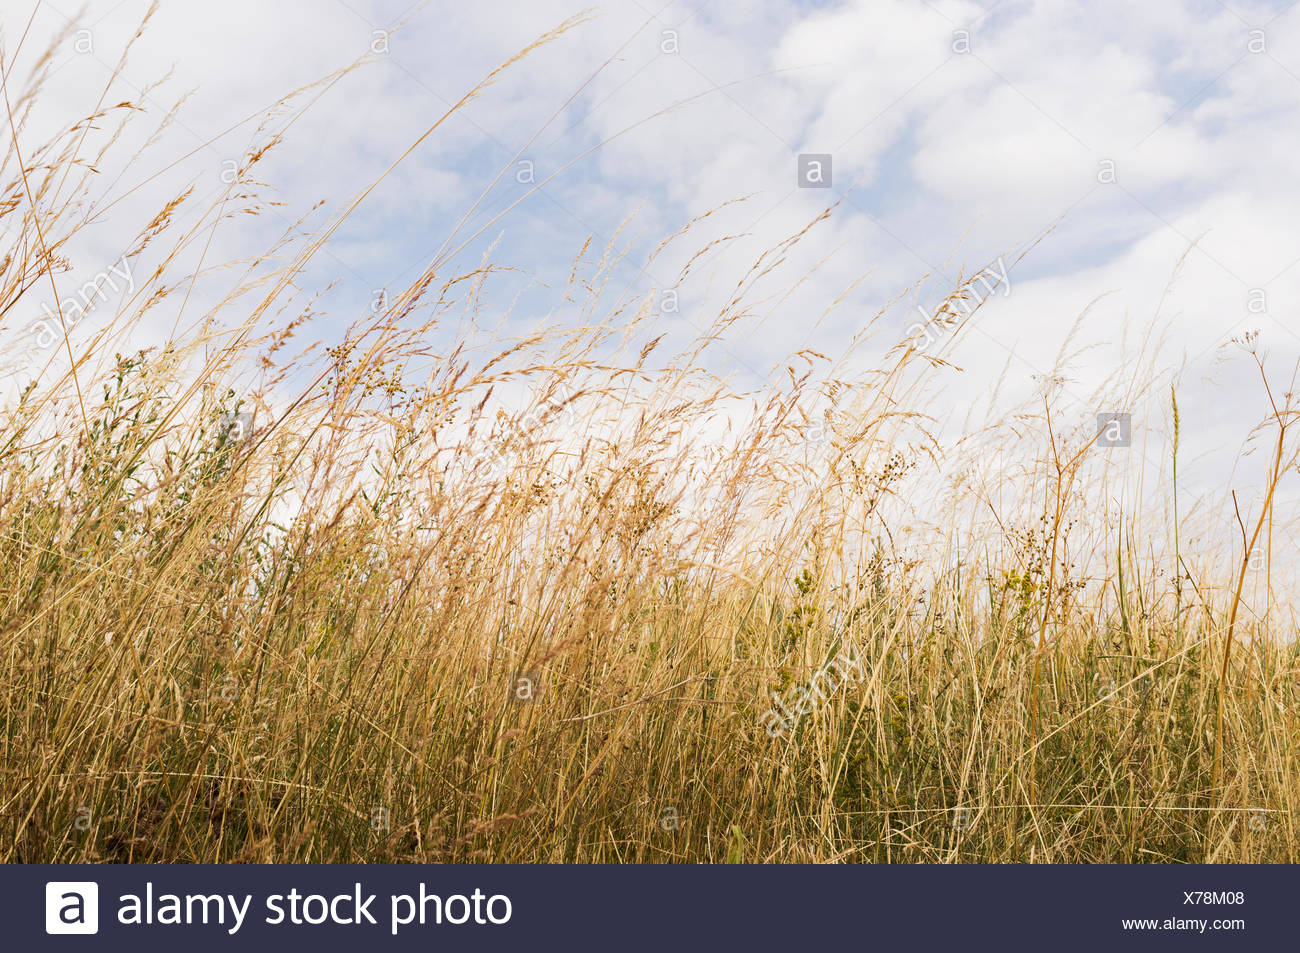 Plants growing against cloudy sky - Stock Image